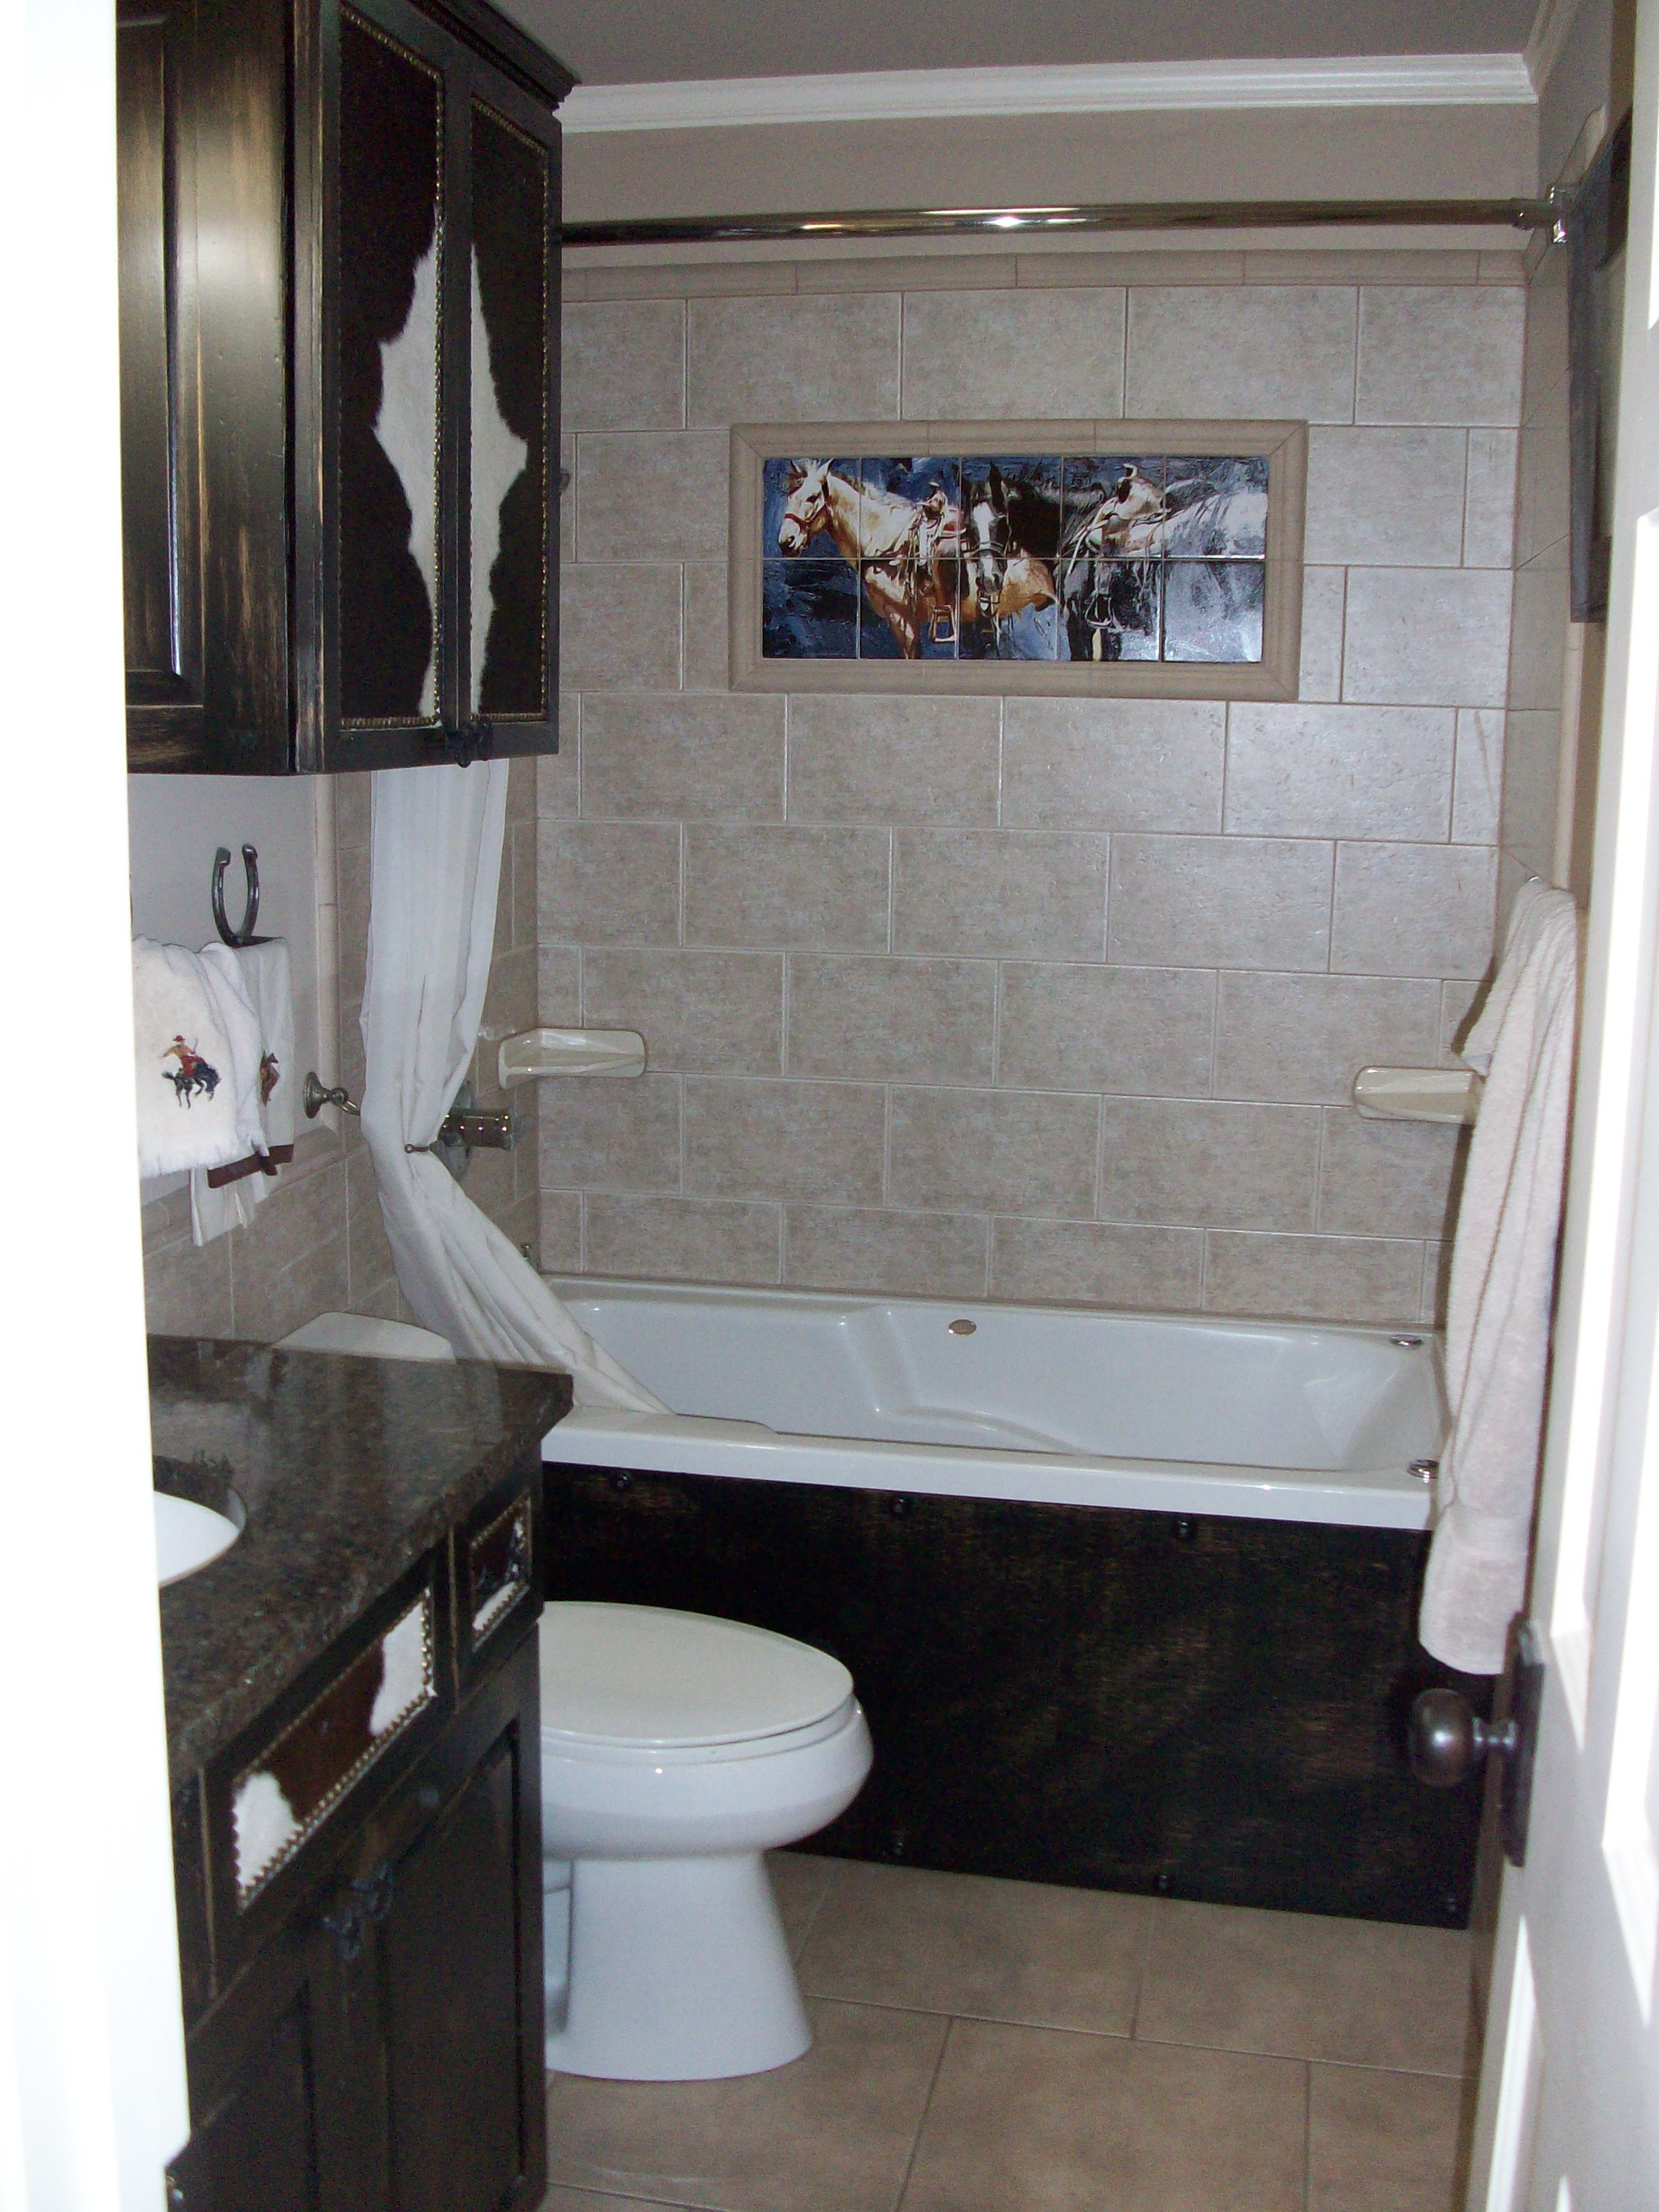 Cowgirl Bath with tile mural